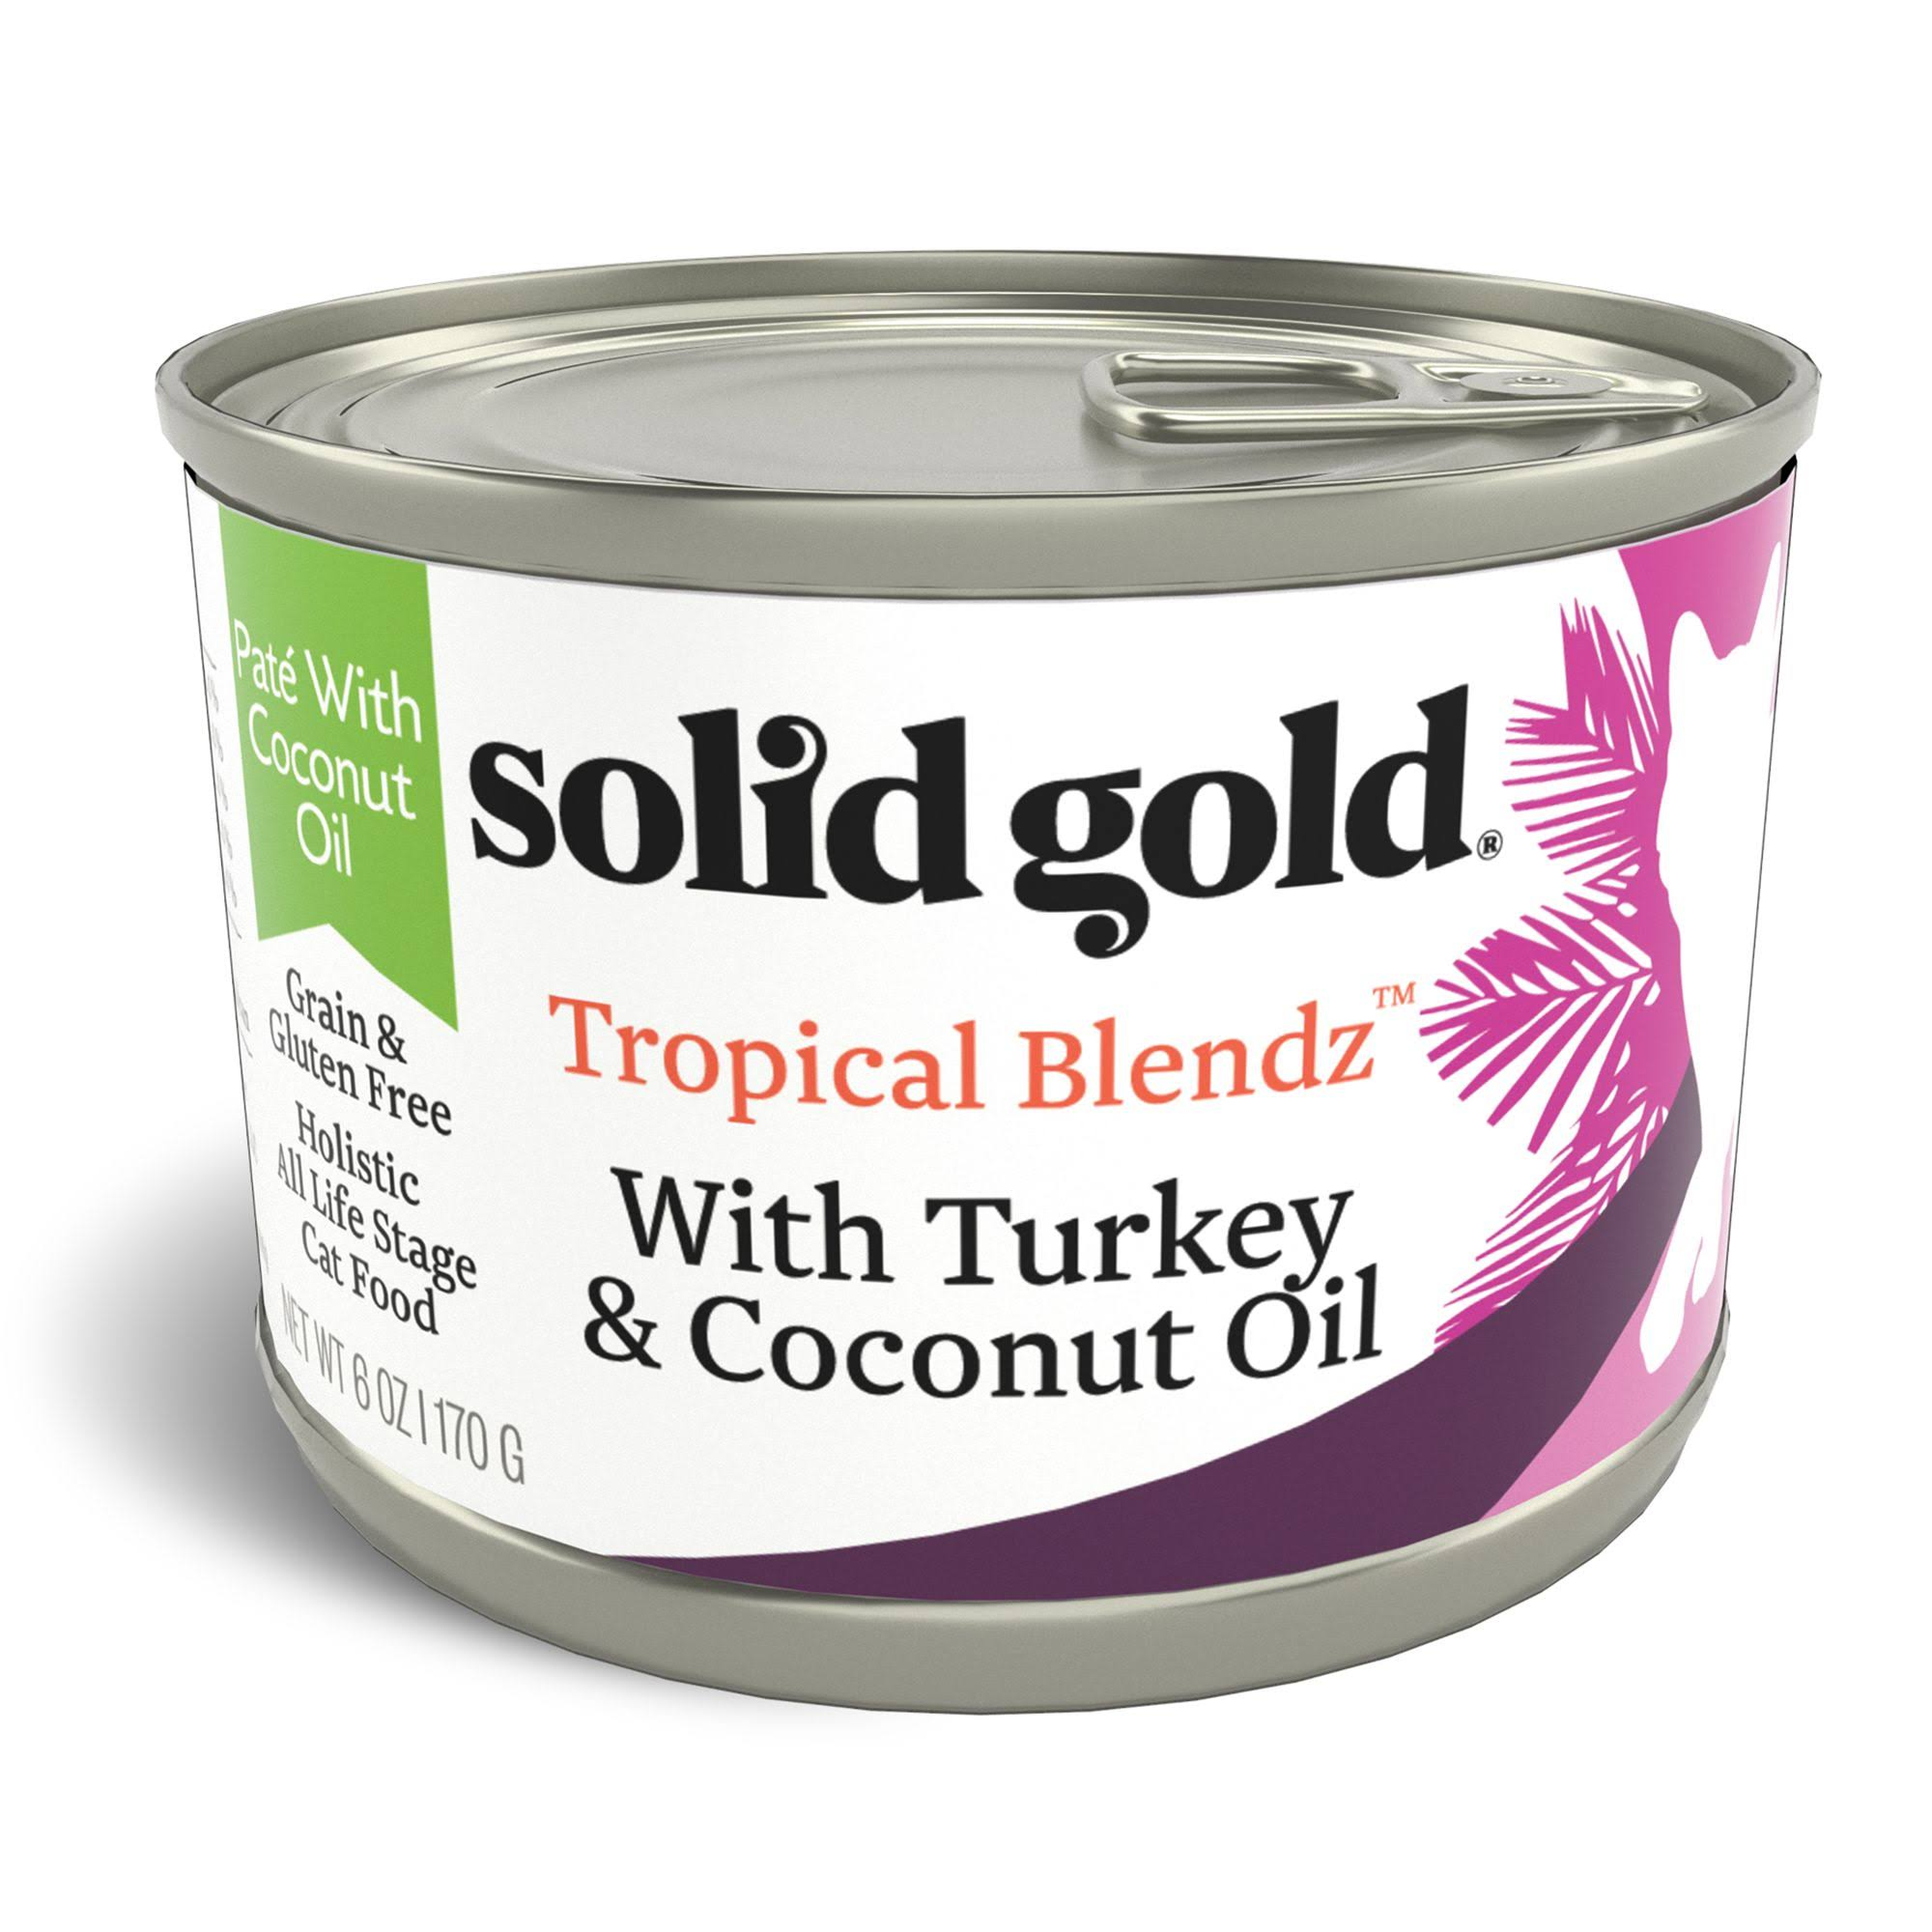 Solid Gold 6 oz Tropical Blendz Pate with Turkey & Coconut Oil Wet Cat Food